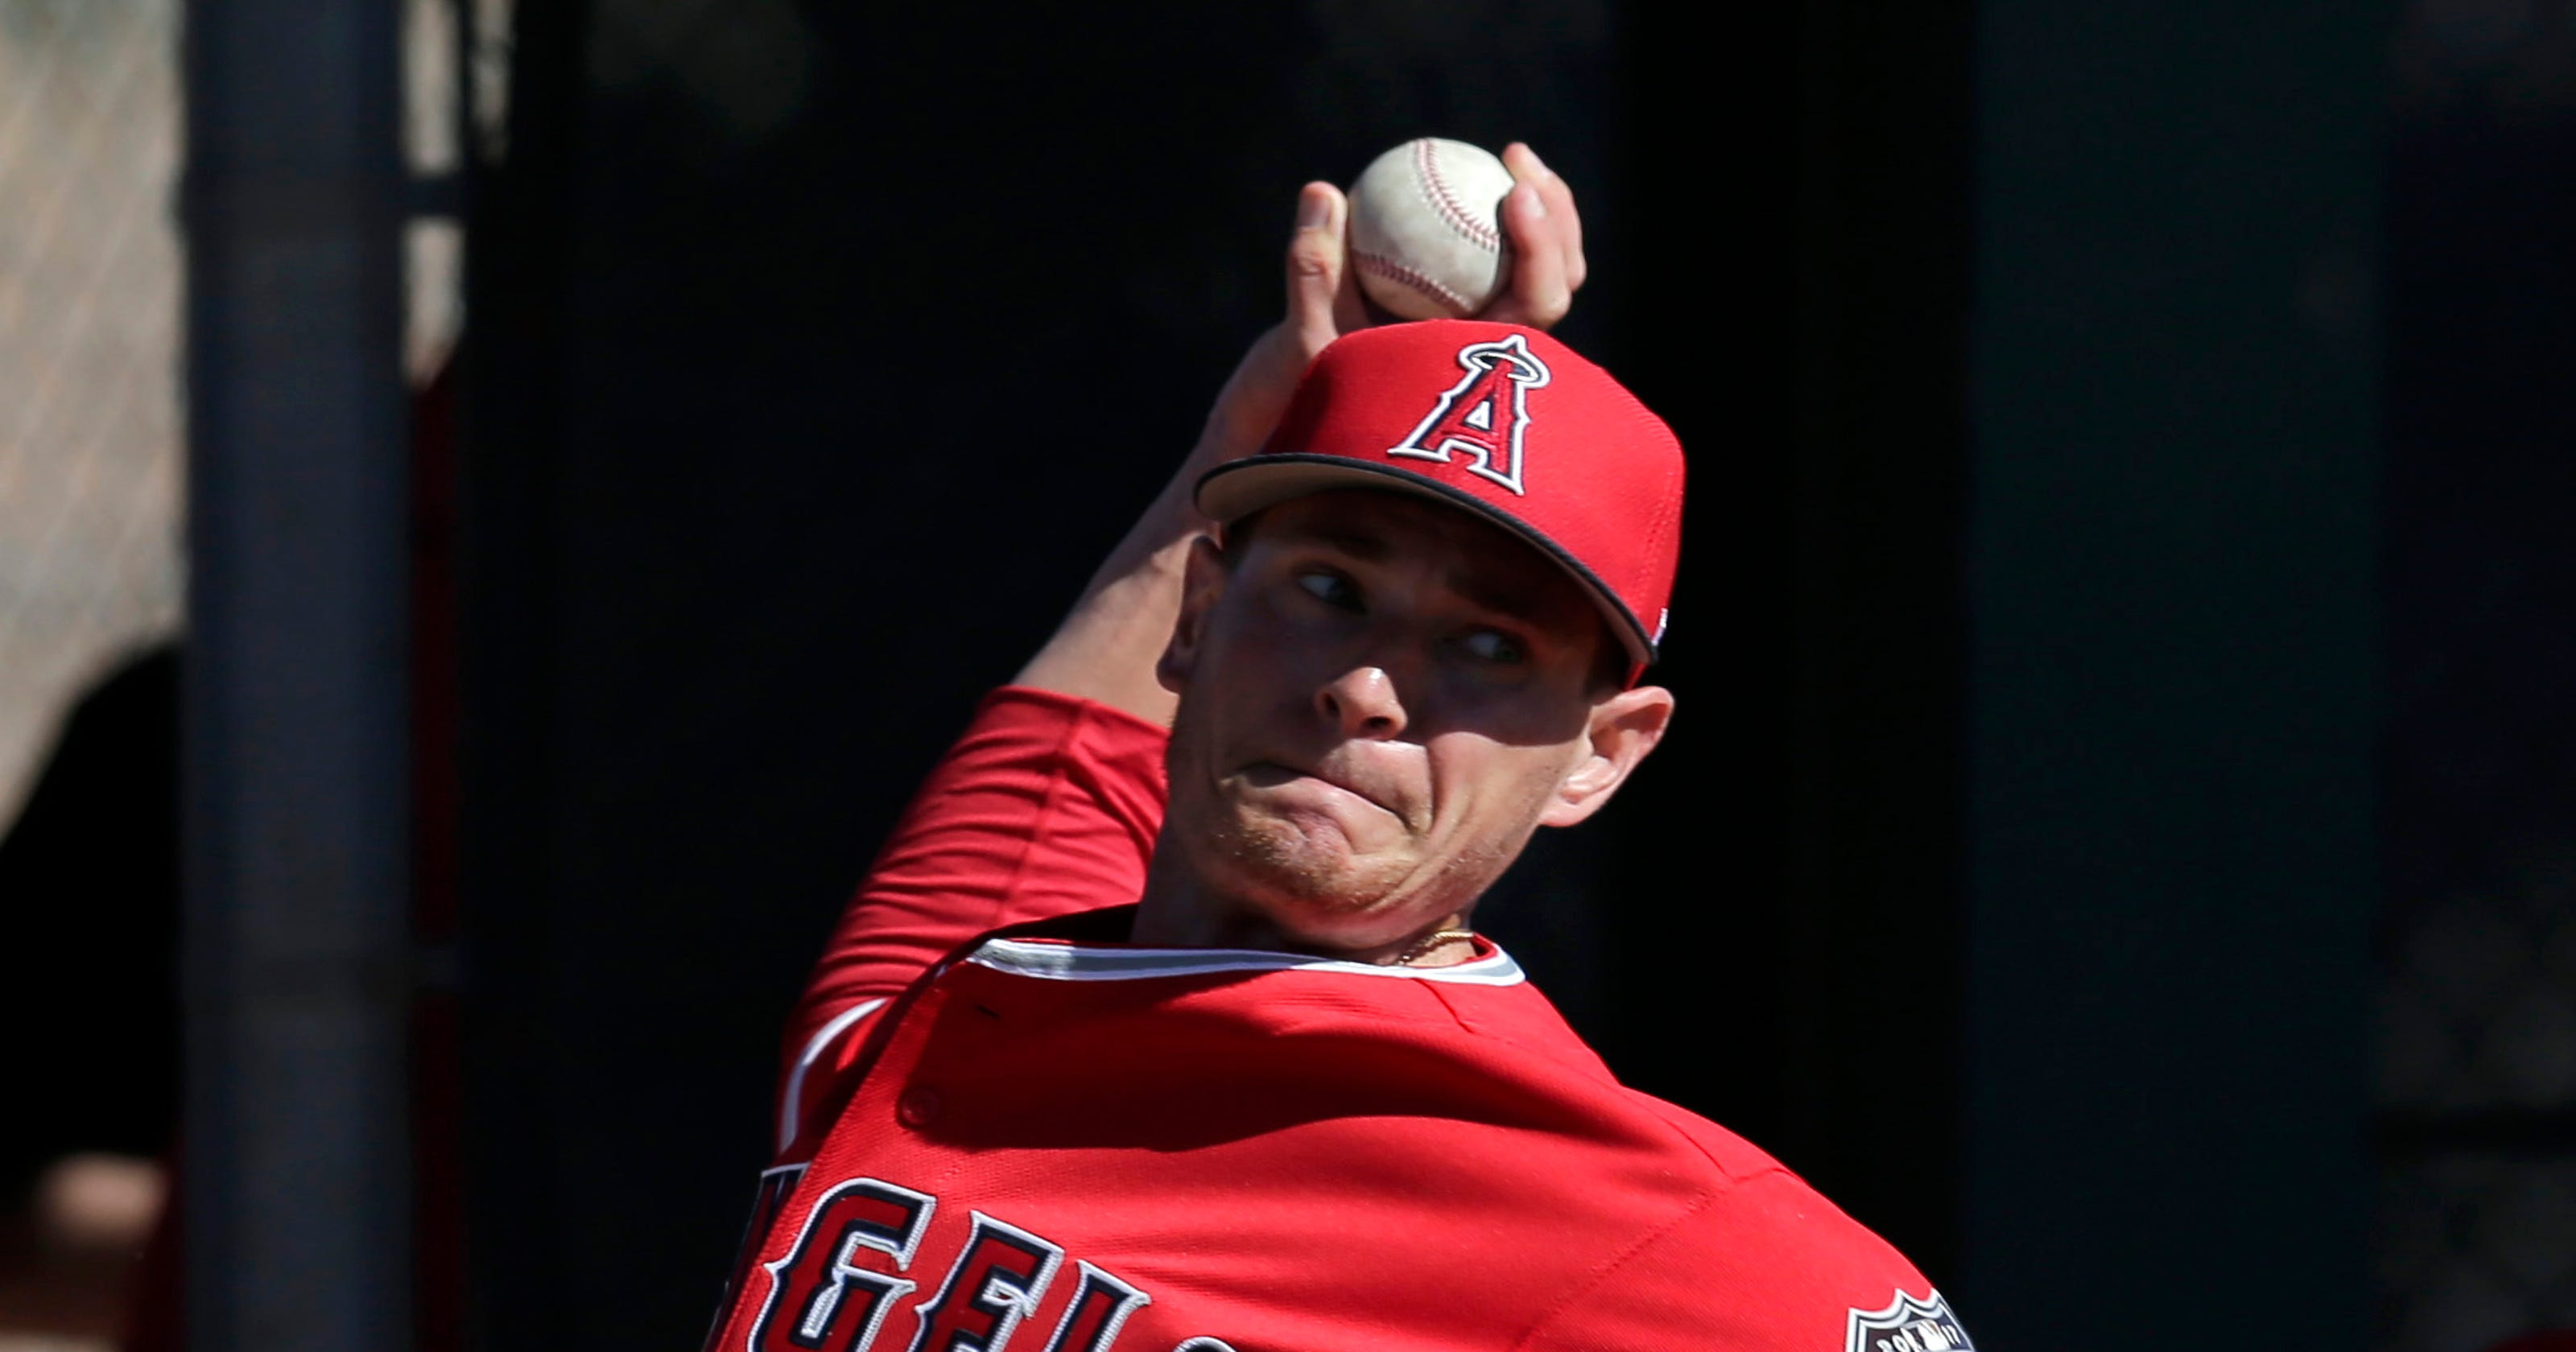 All eyes on Garrett Richards, in hopes stem cells stave off